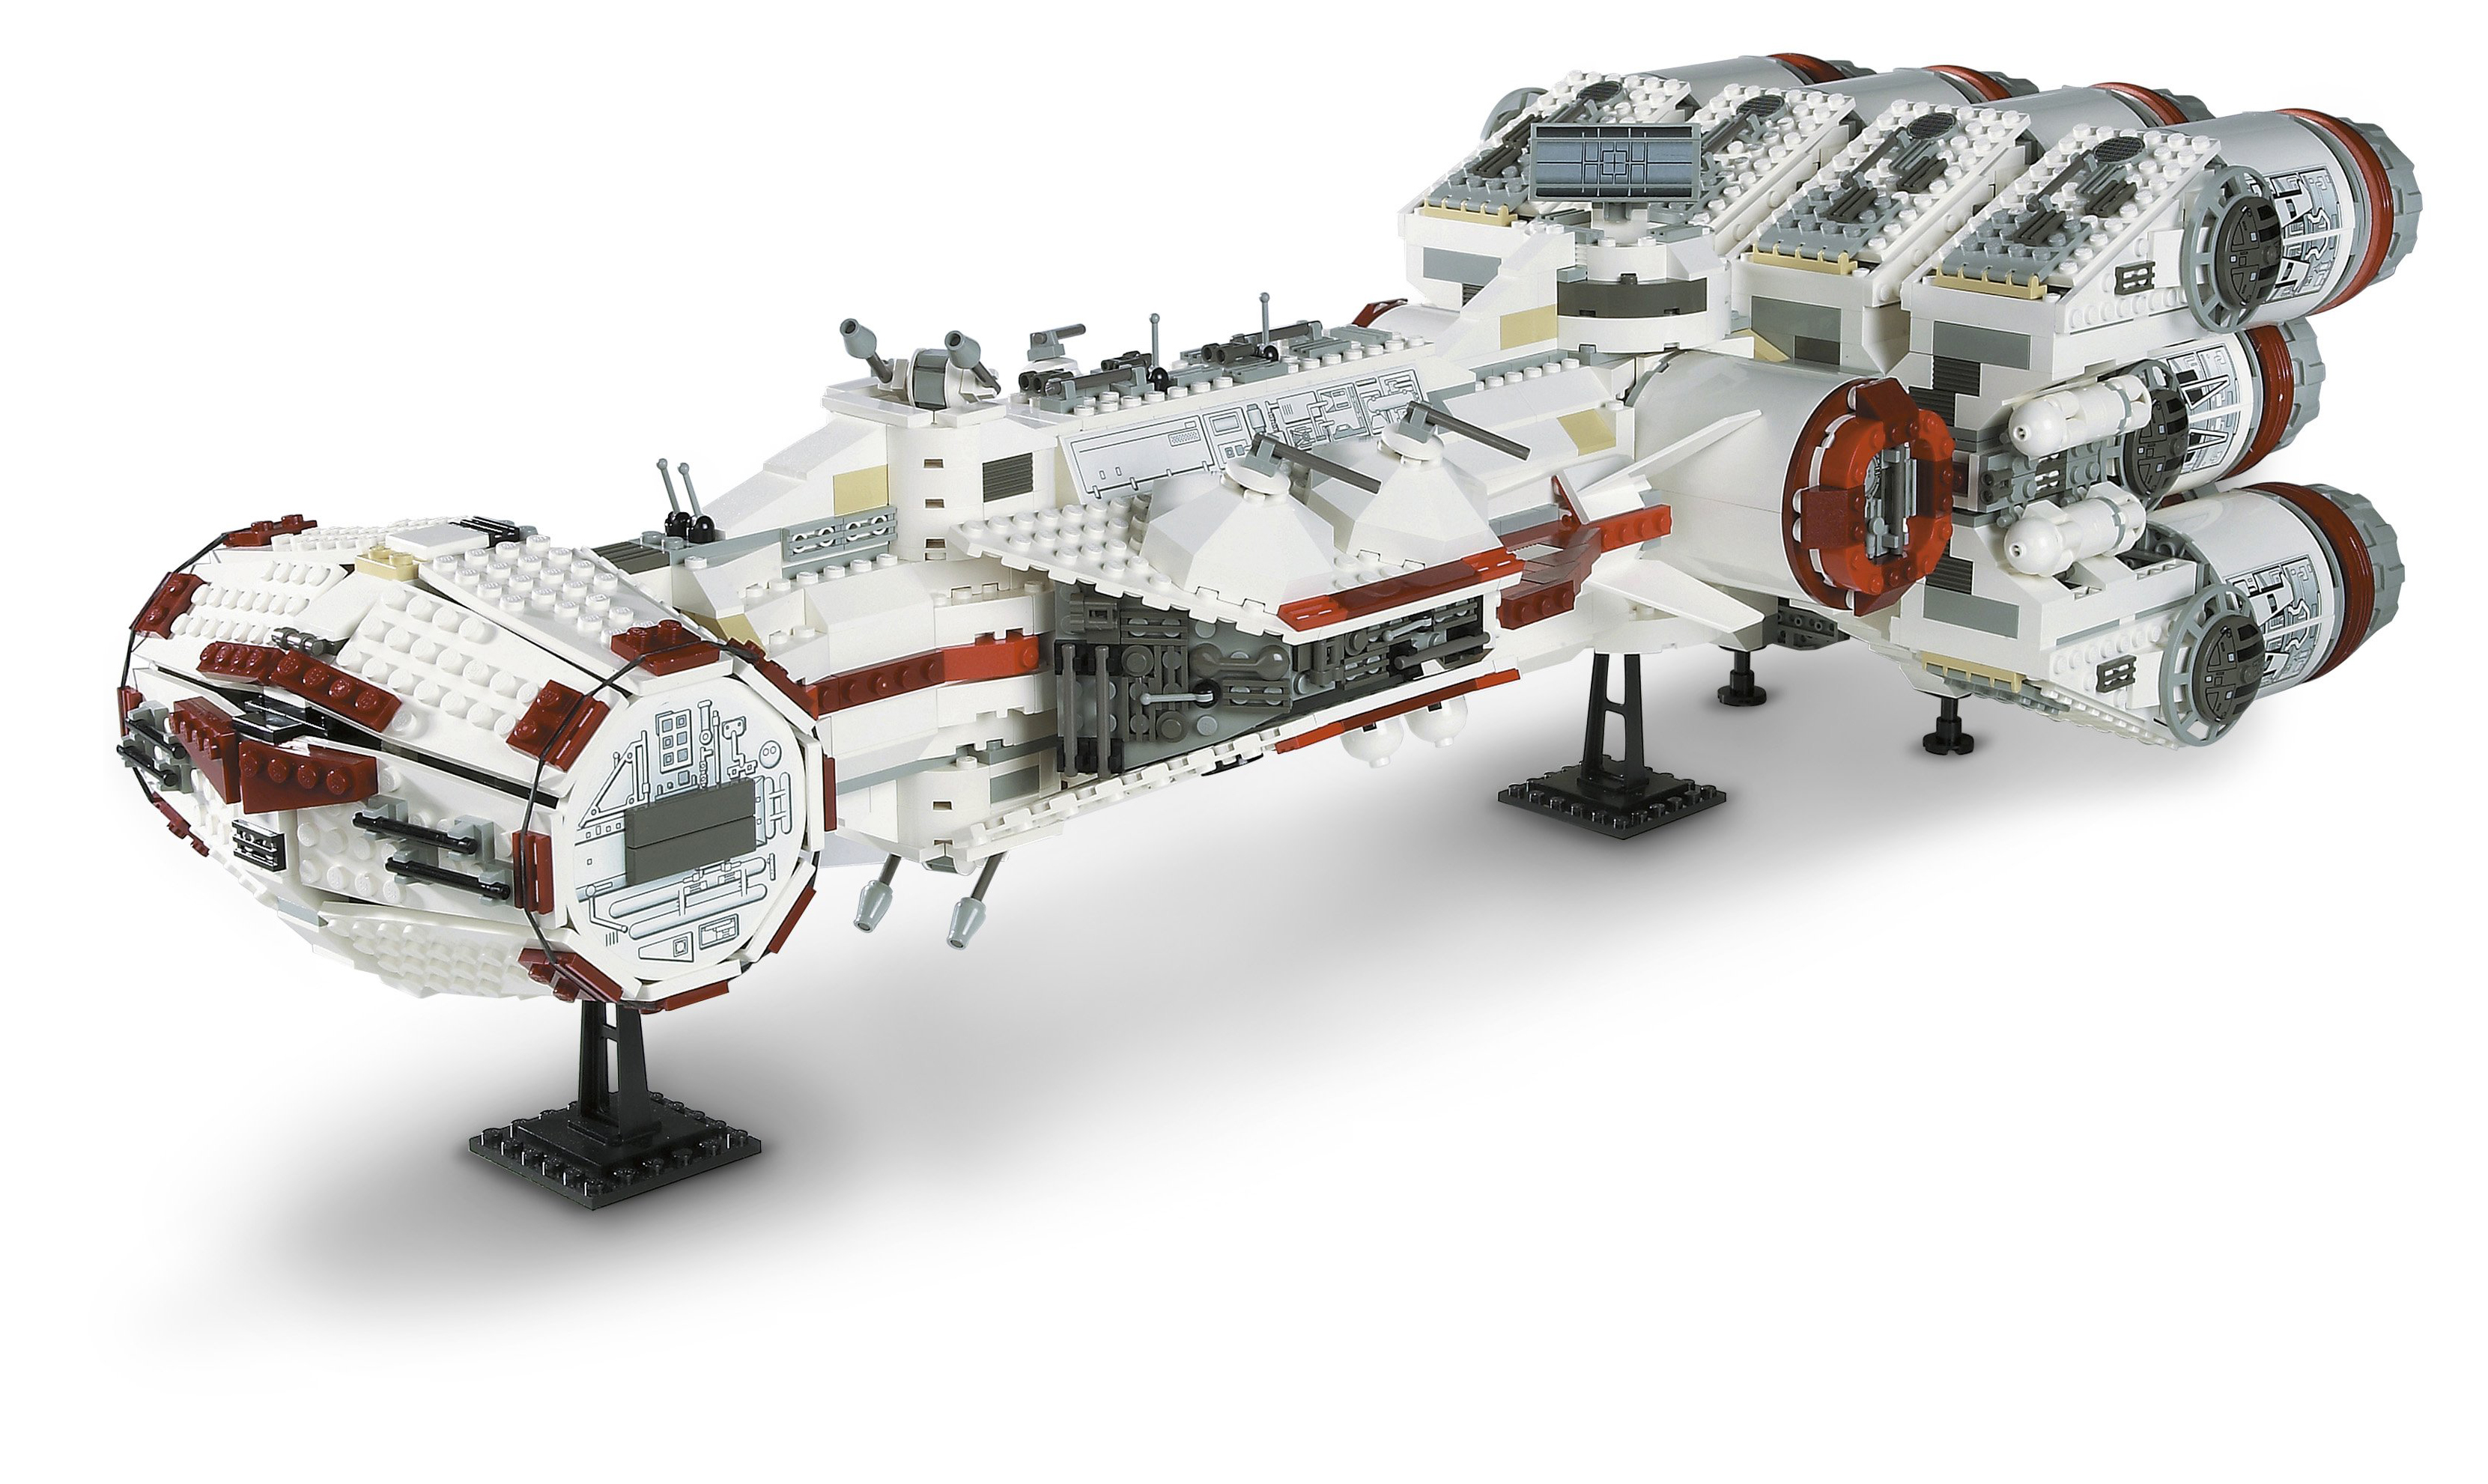 lego-10019-rebel-blockade-runner-large.jpg